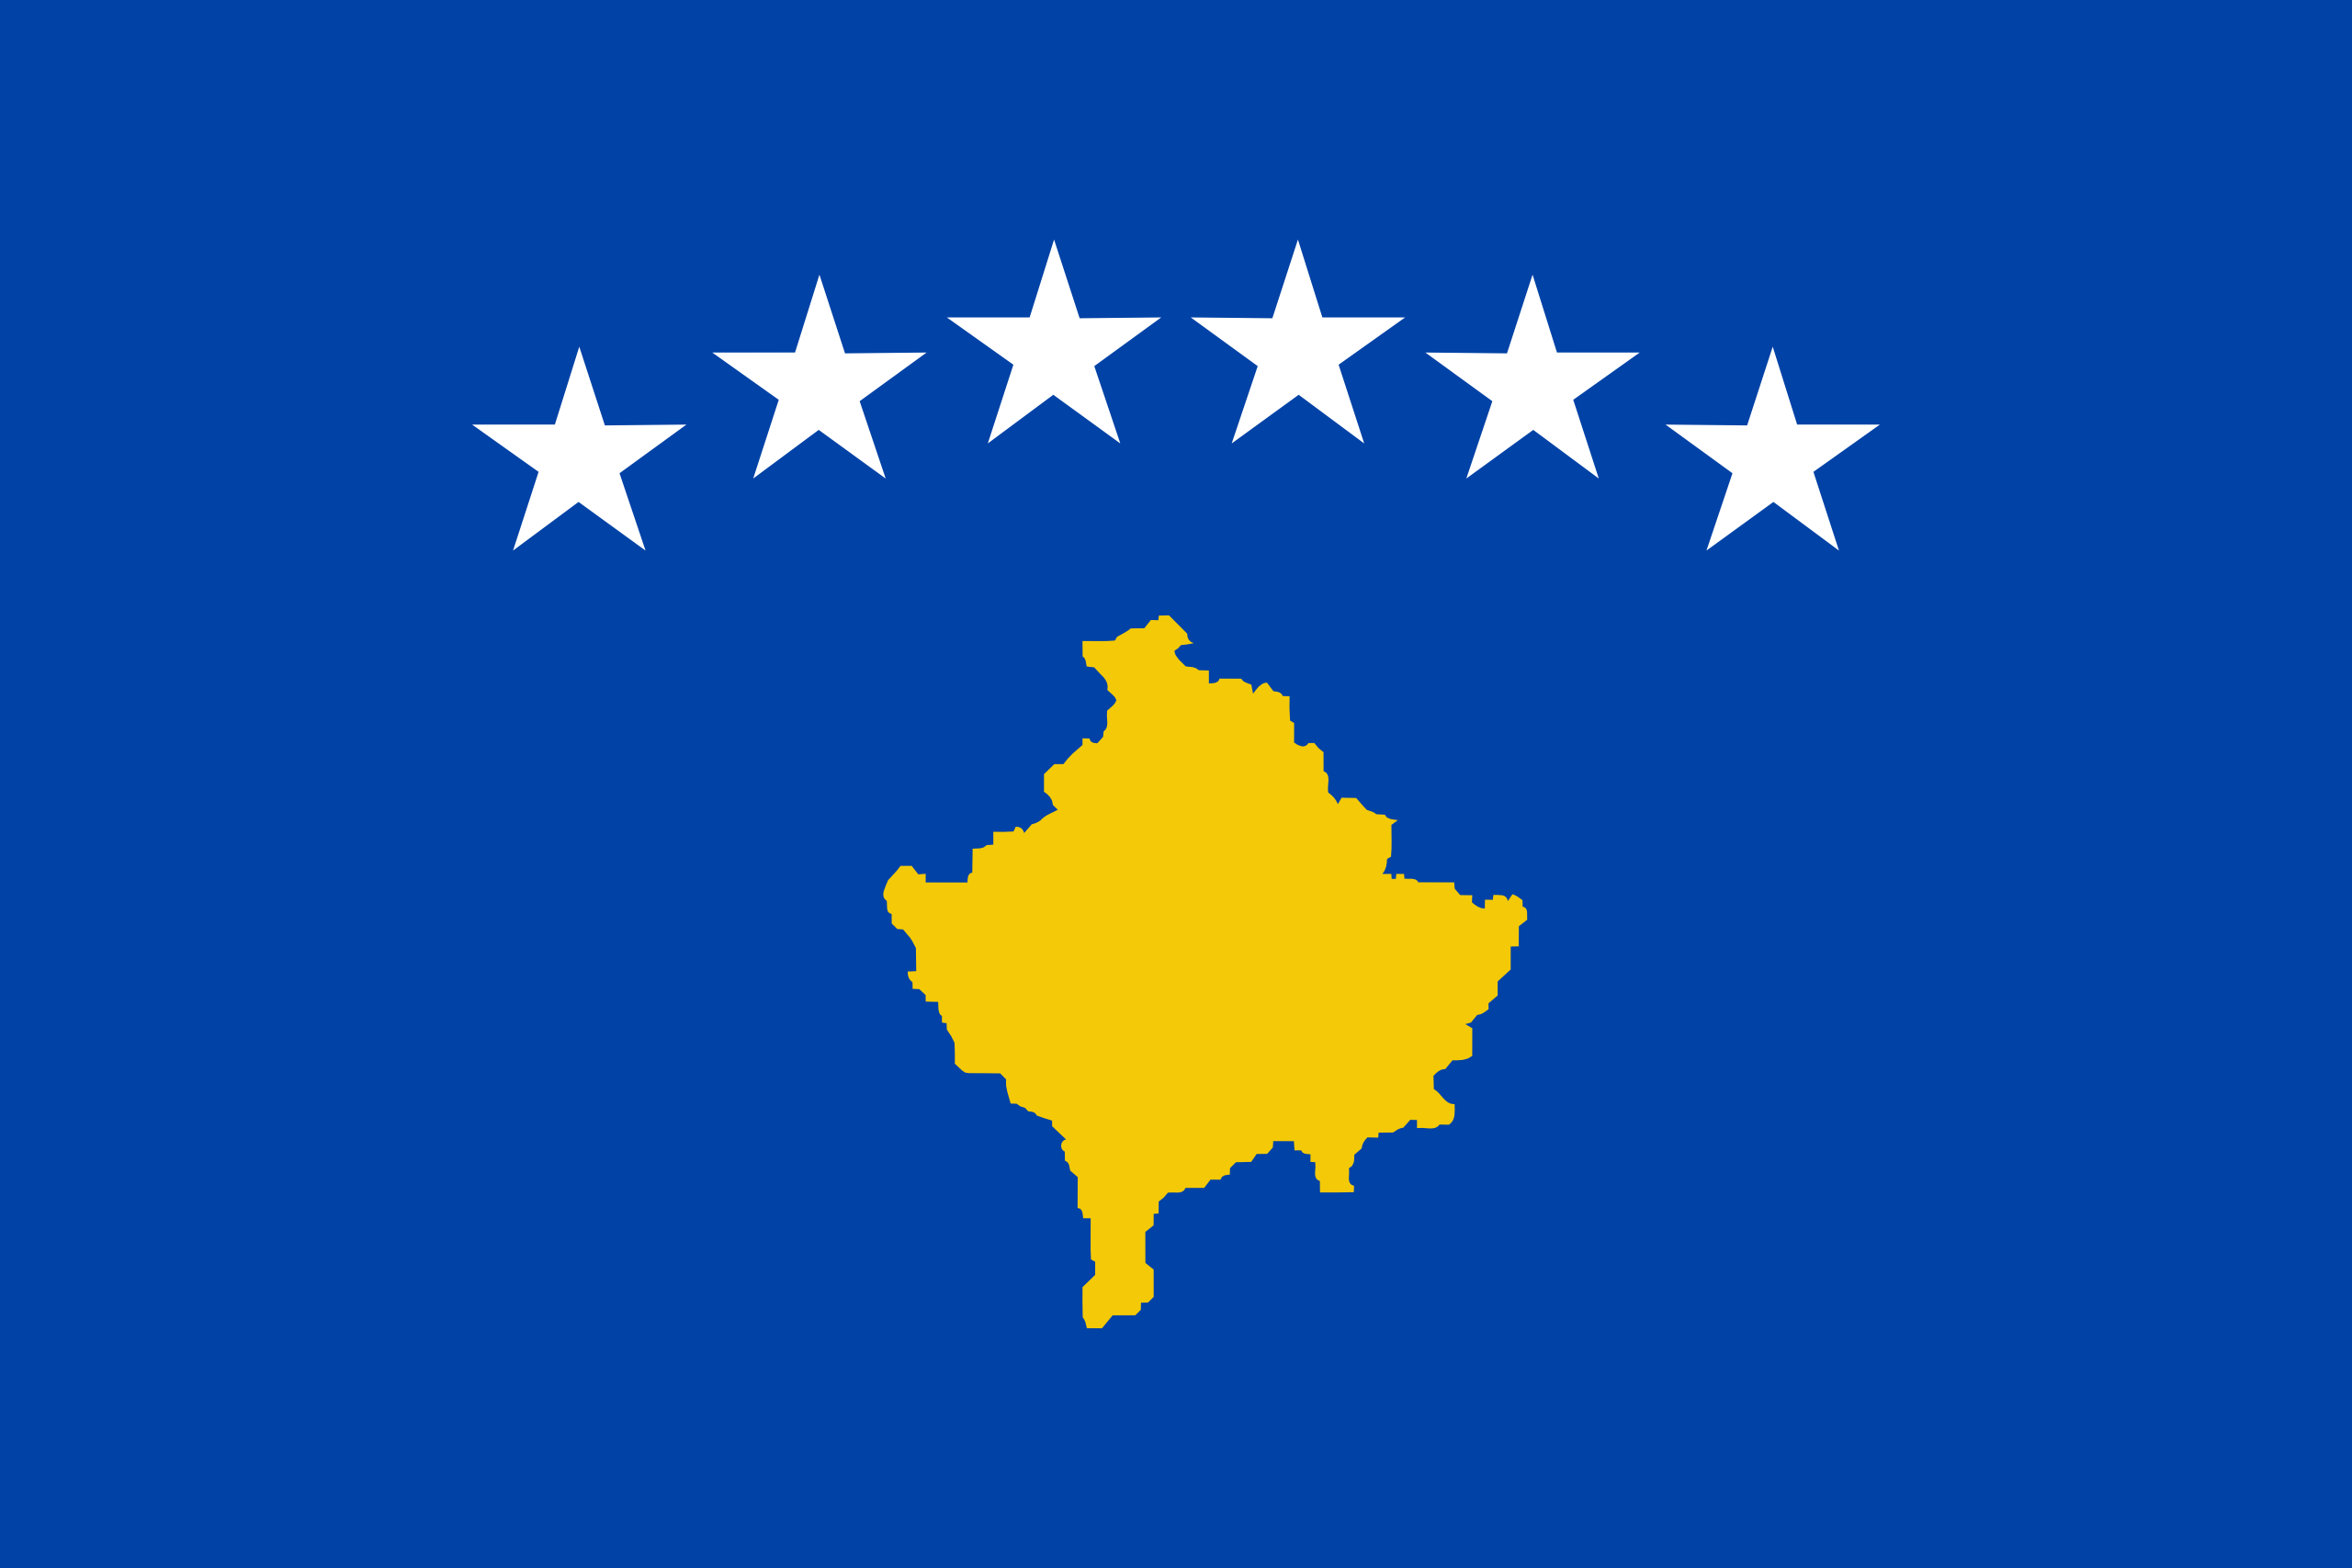 Kosovo | Flags of countries